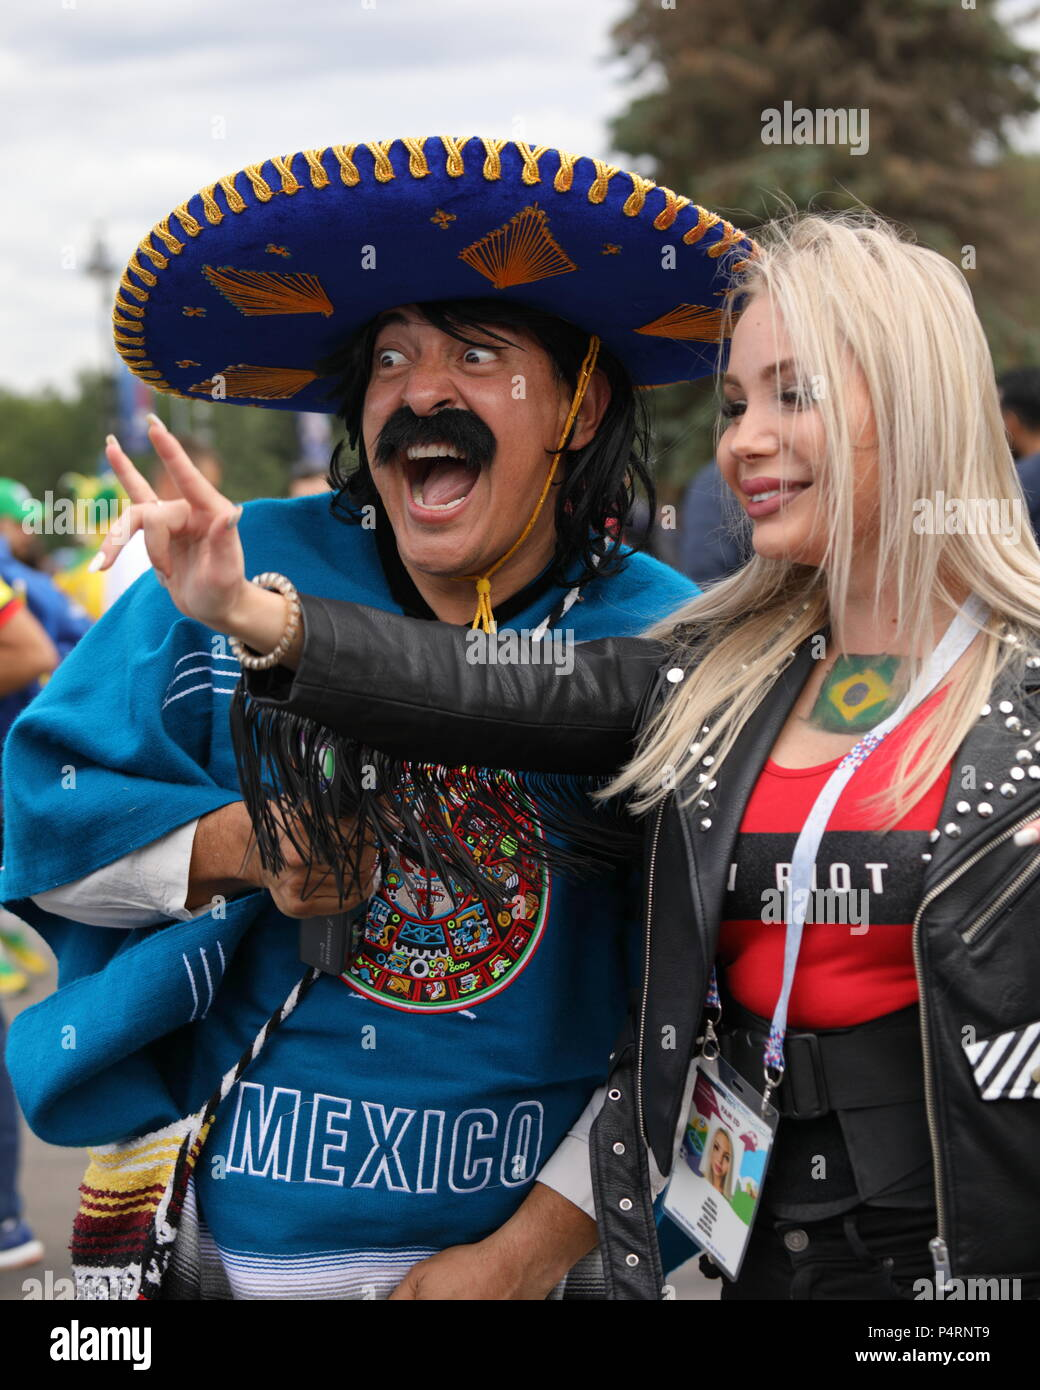 Mexican journalist in sombrero make a reportage at the Saint Petersburg stadium before the match of FIFA World Cup Brazil vs Costa Rica - Stock Image